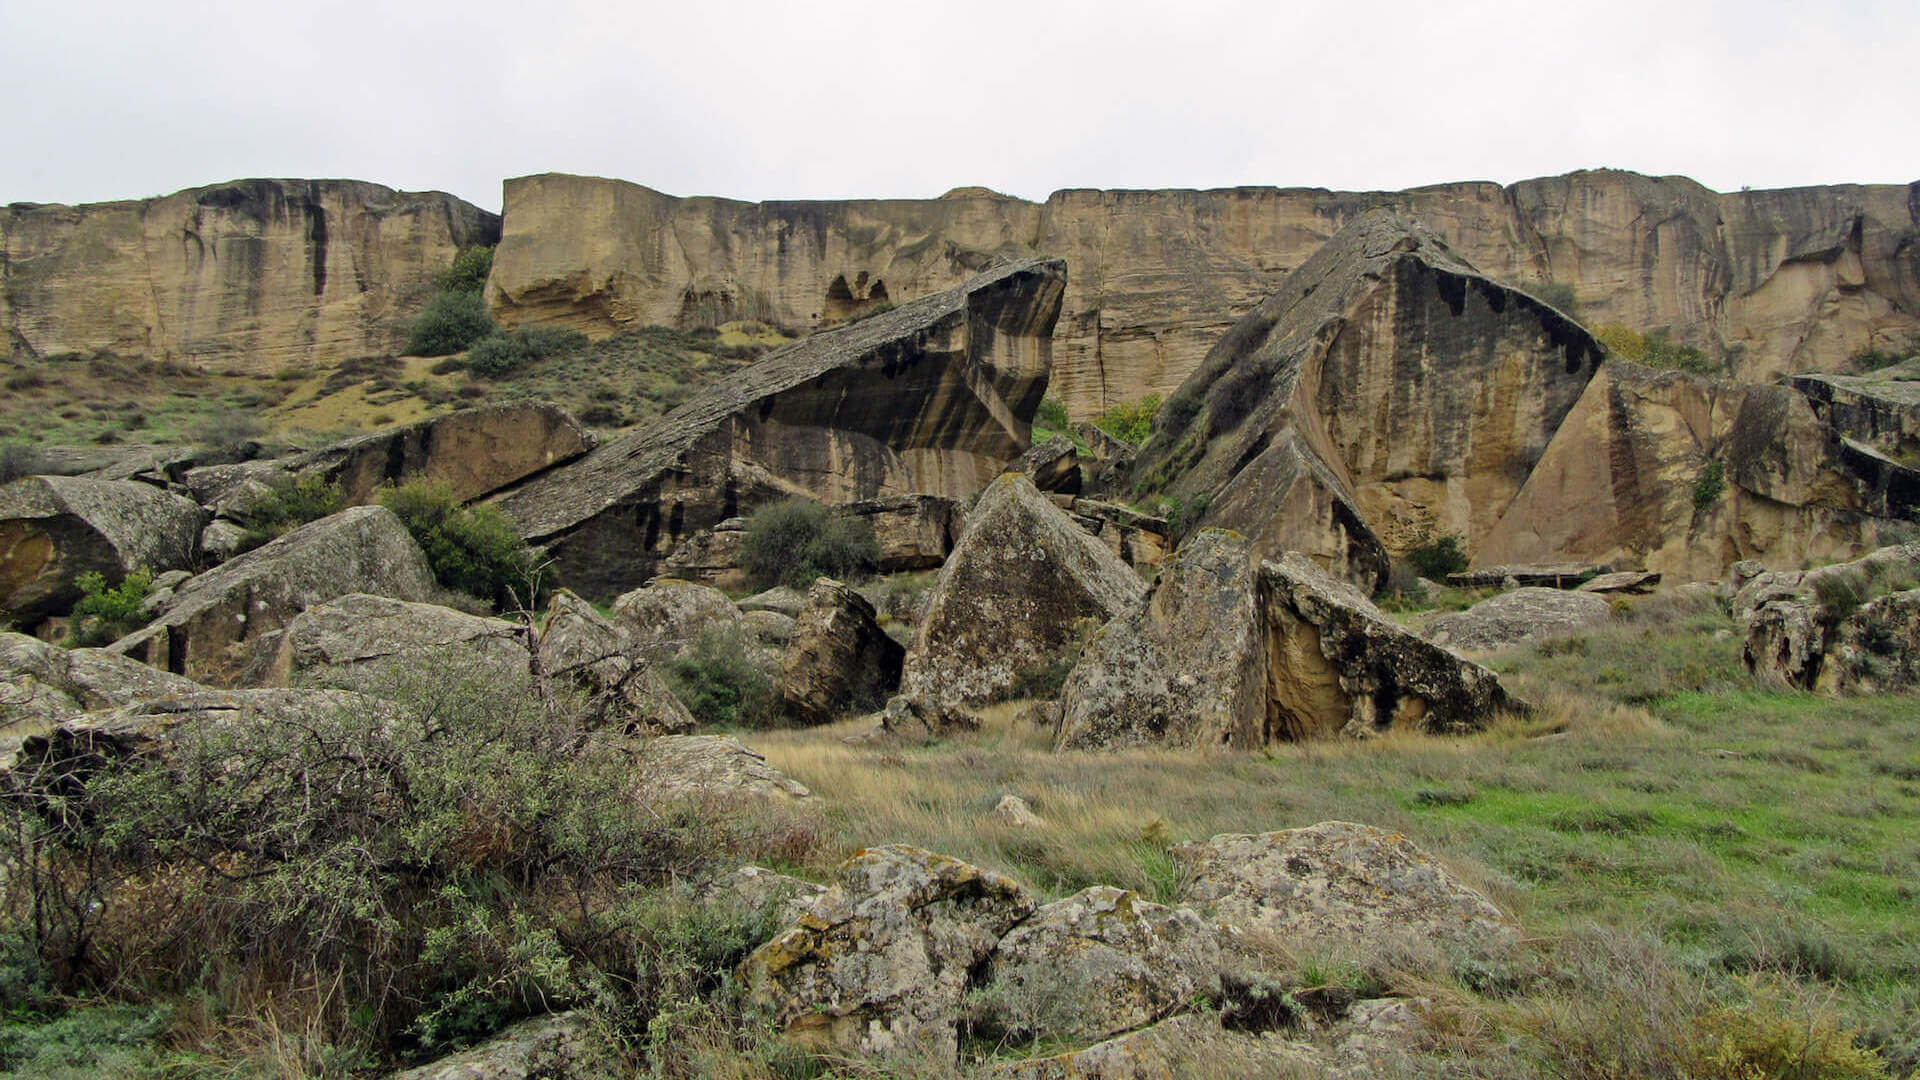 Rotsen in Gobustan Nationaal Park in Azerbeidzjan